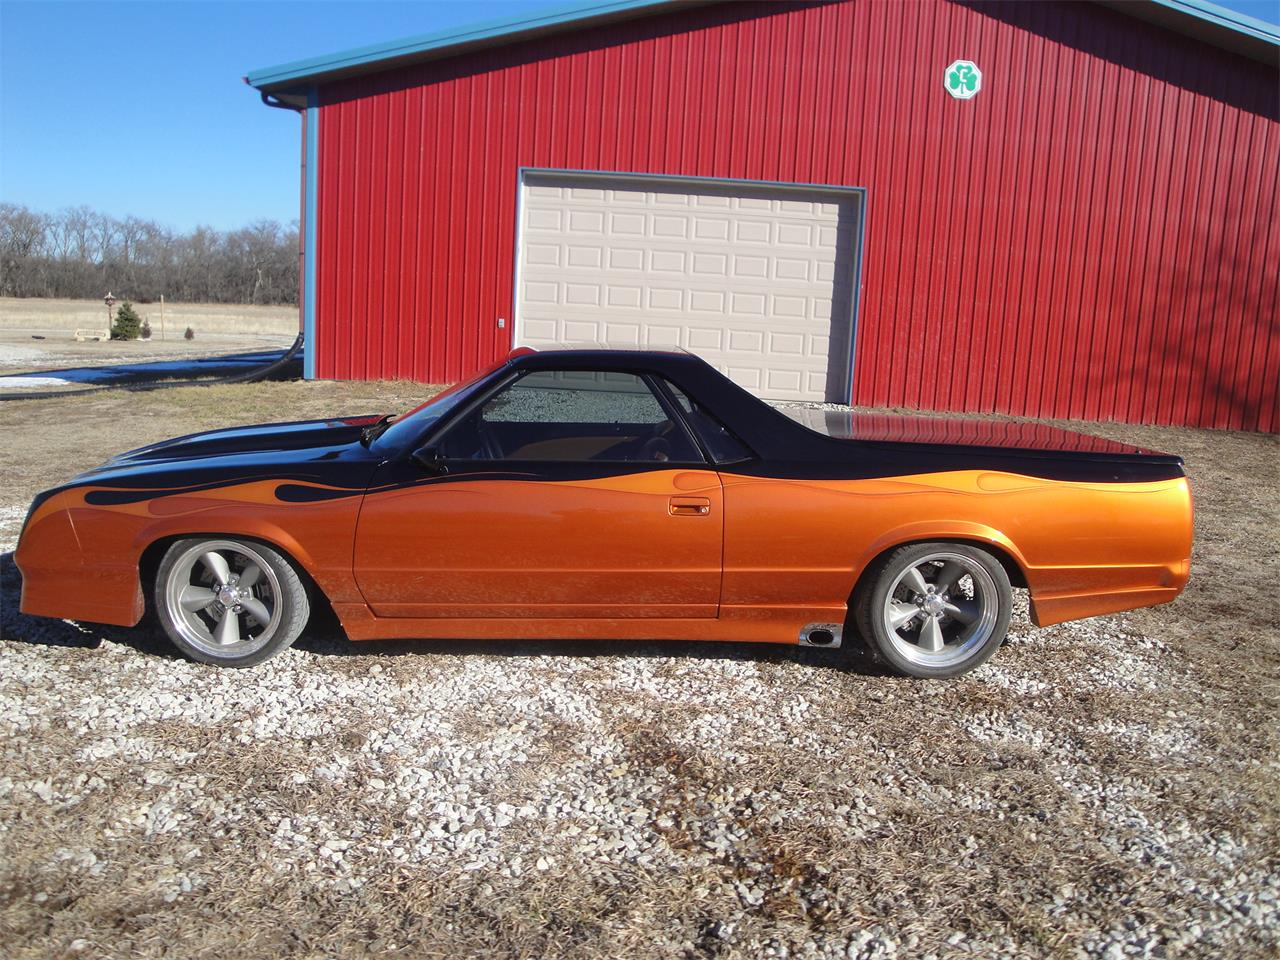 1983 Chevrolet El Camino (CC-1269542) for sale in McPherson, Kansas